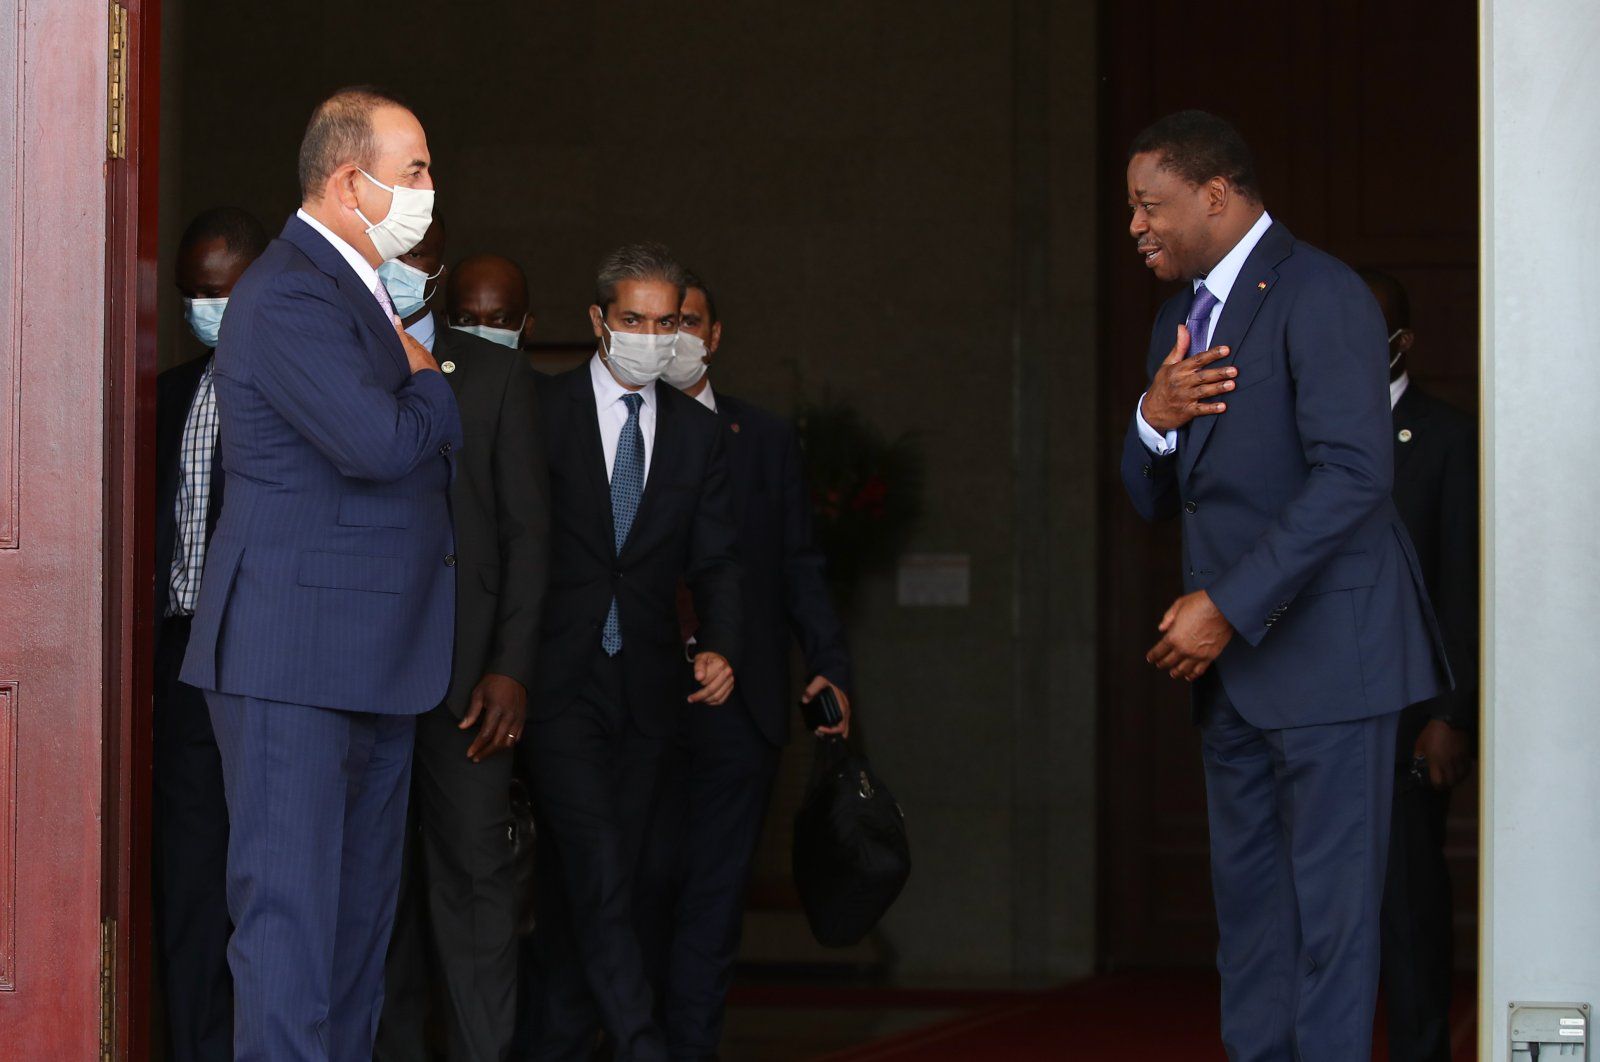 Turkish Foreign Minister Mevlüt Çavuşoğlu (L) is greeted by Togo's President Faure Gnassingbe (R) on an official visit to the capital Lome, Togo, July 20, 2020. (AA Photo)